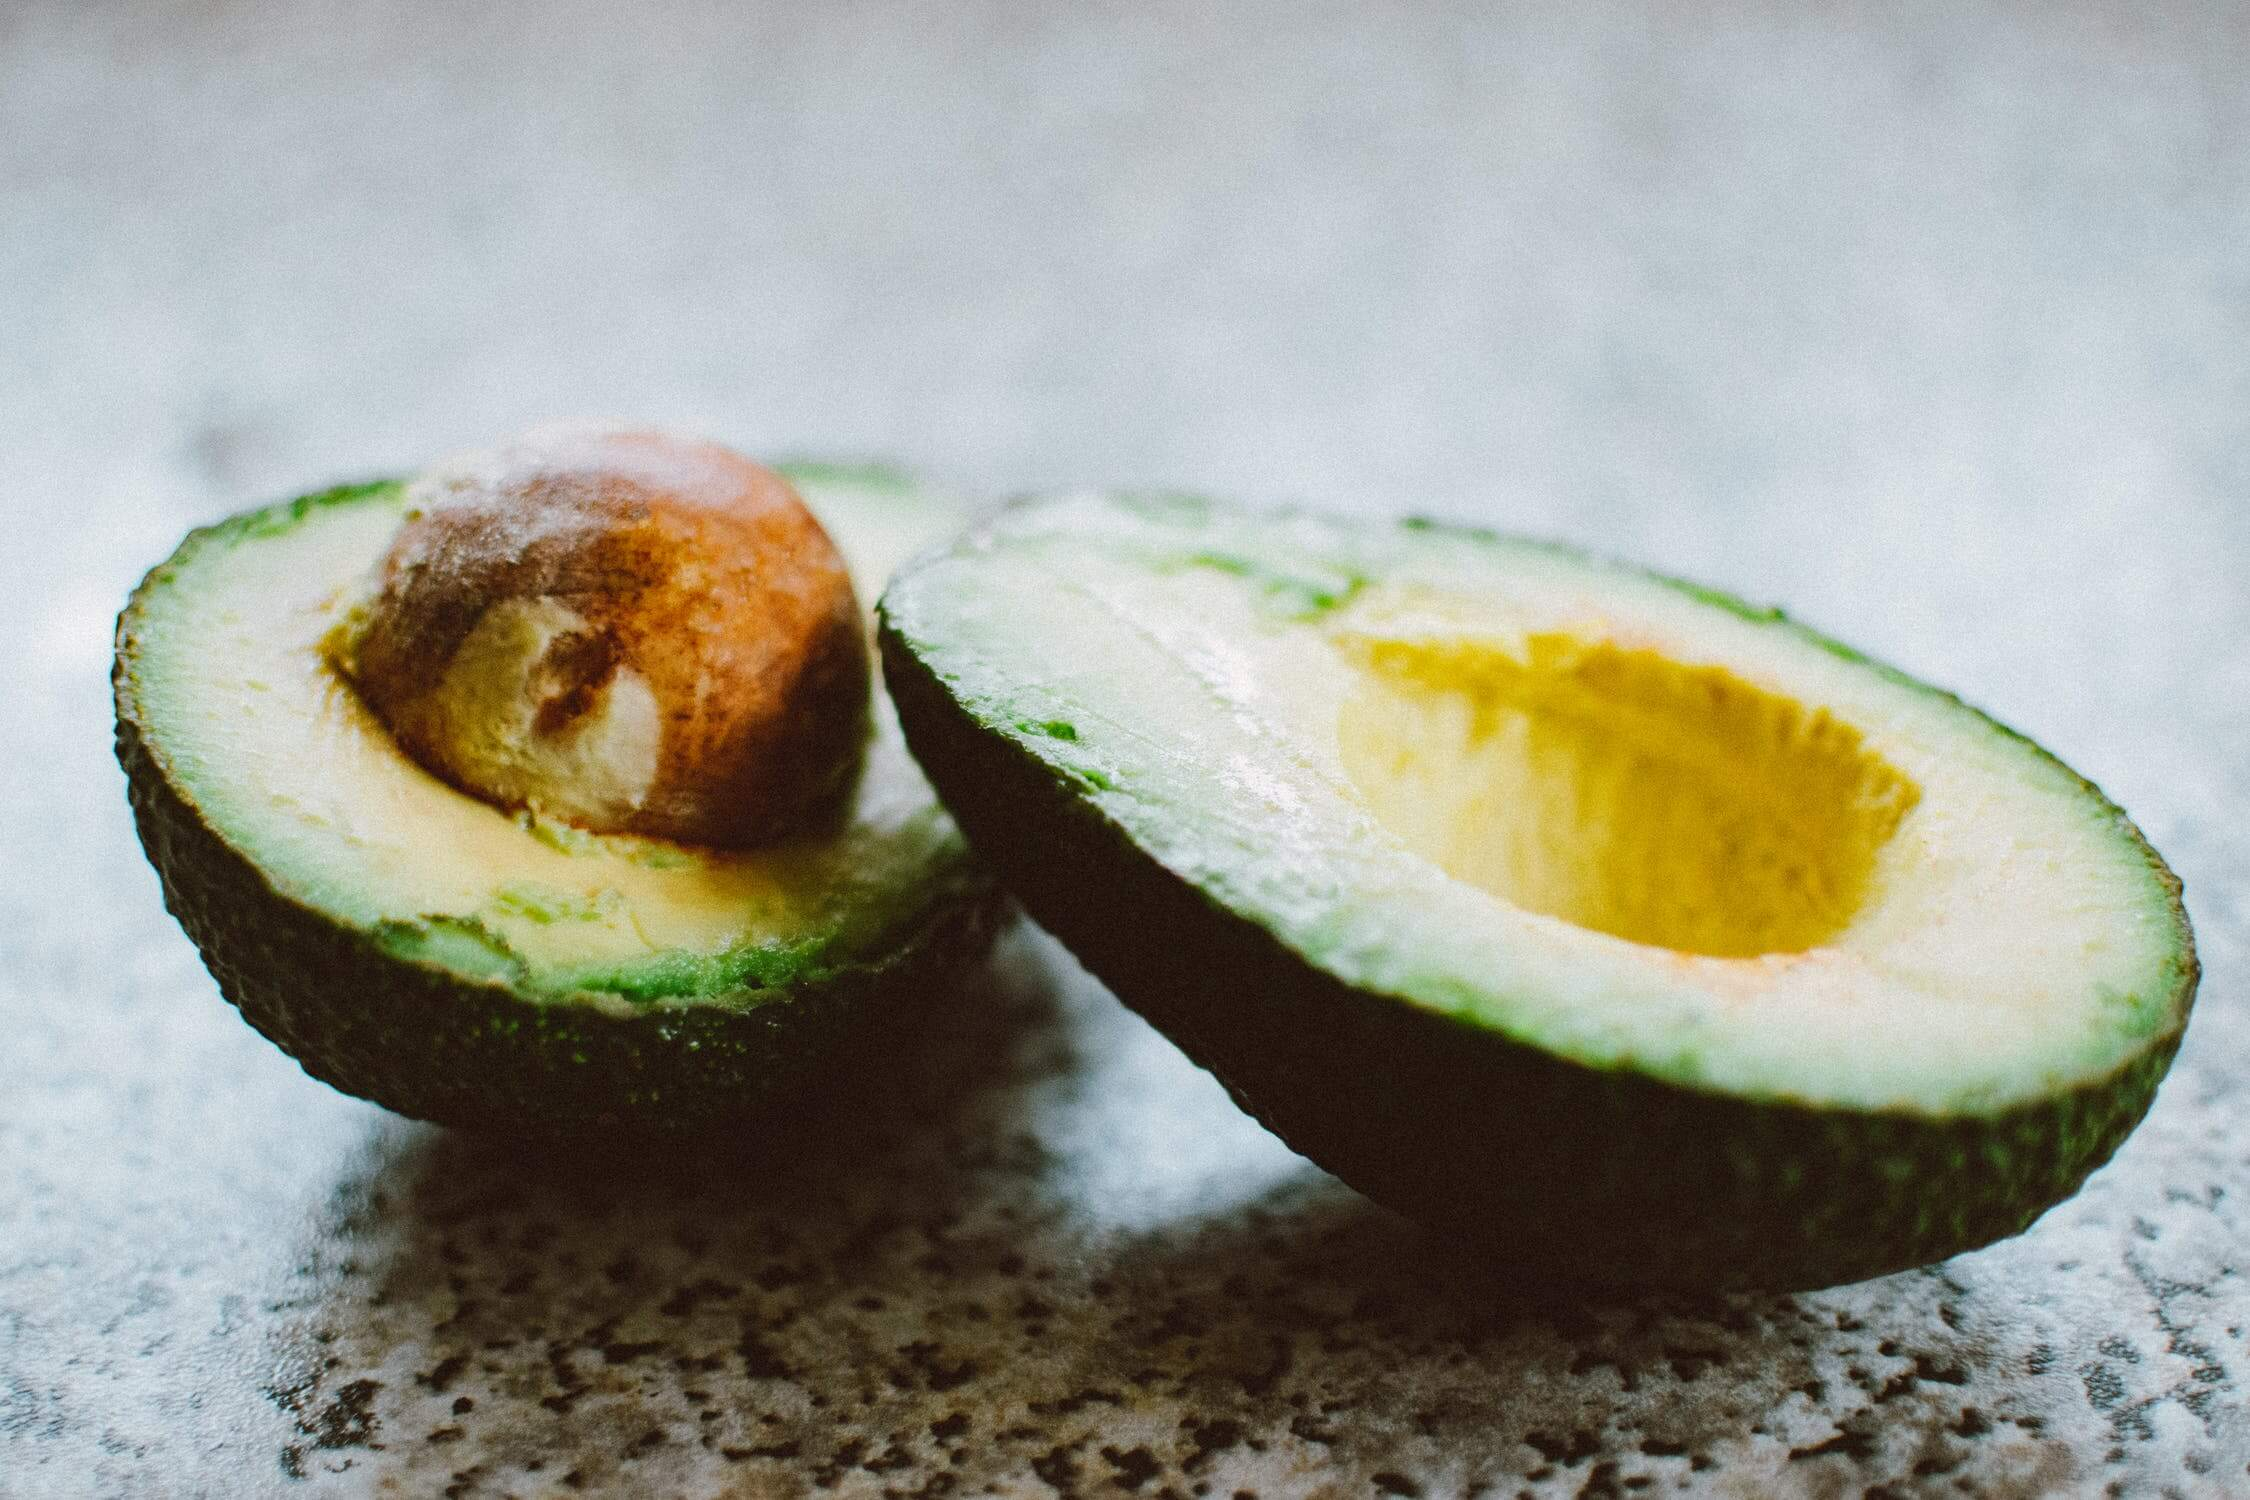 A sliced open avocado. Avocados are great brain health foods